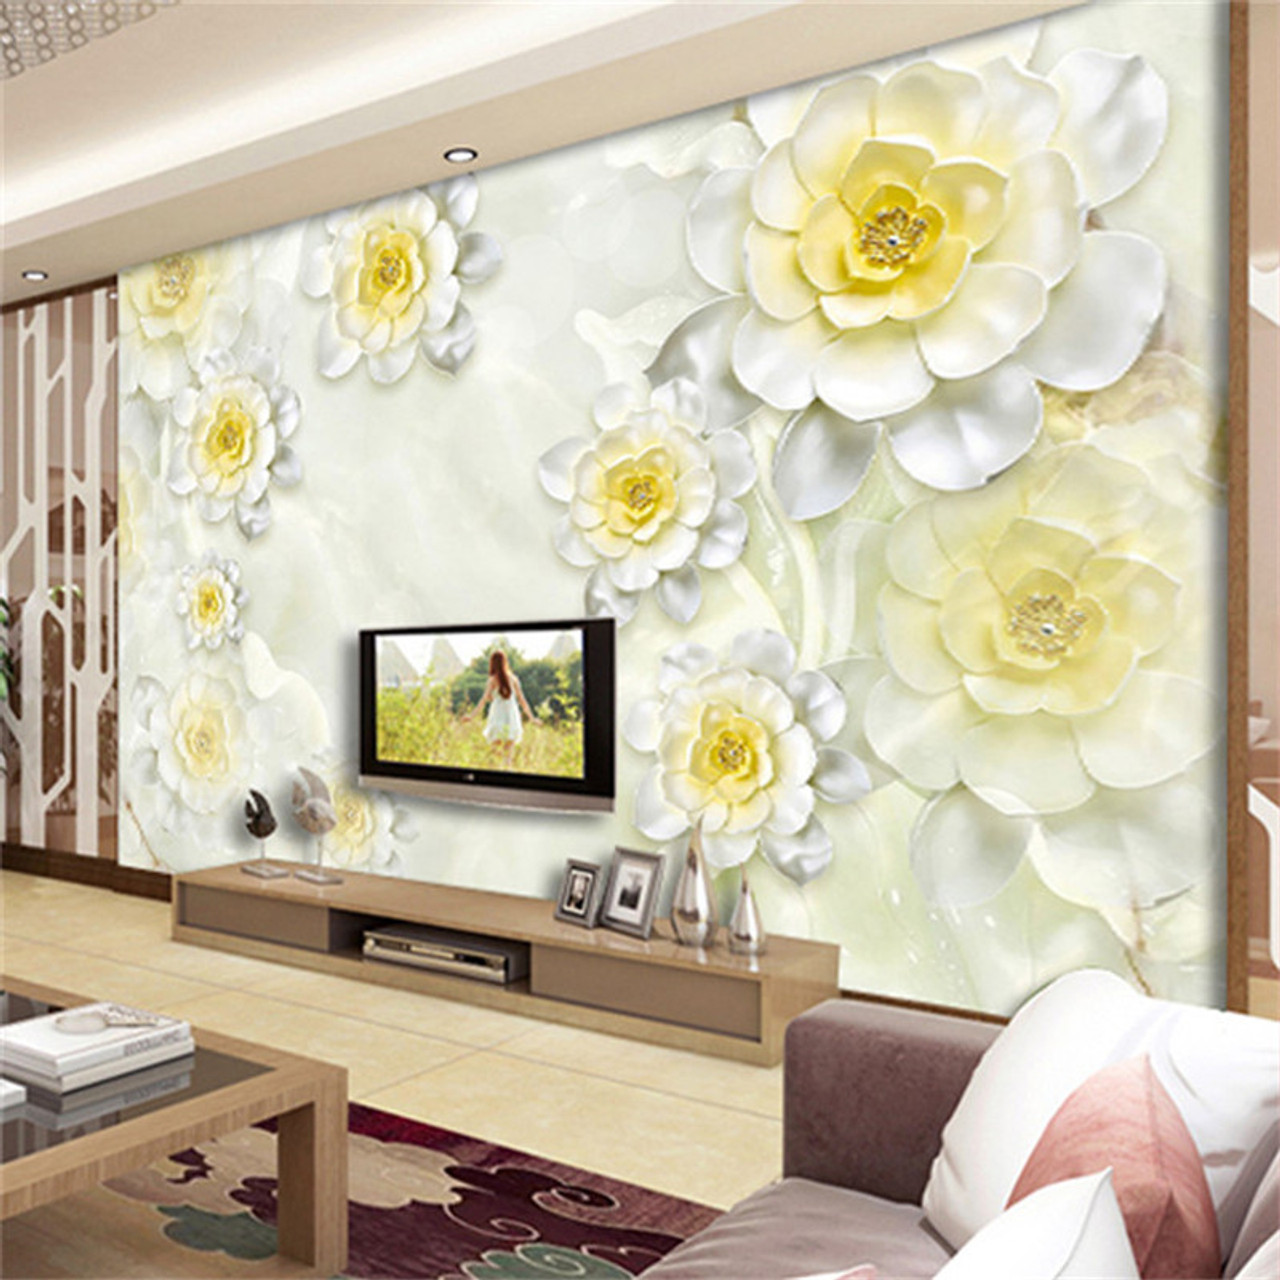 Home Improvement Painting Supplies & Wall Treatments Photo Wallpaper Modern 3d Stereo White Circle Dandelion Wall Mural Living Room Tv Sofa Home Decor Wall Paper For Wall 3 D Fresco